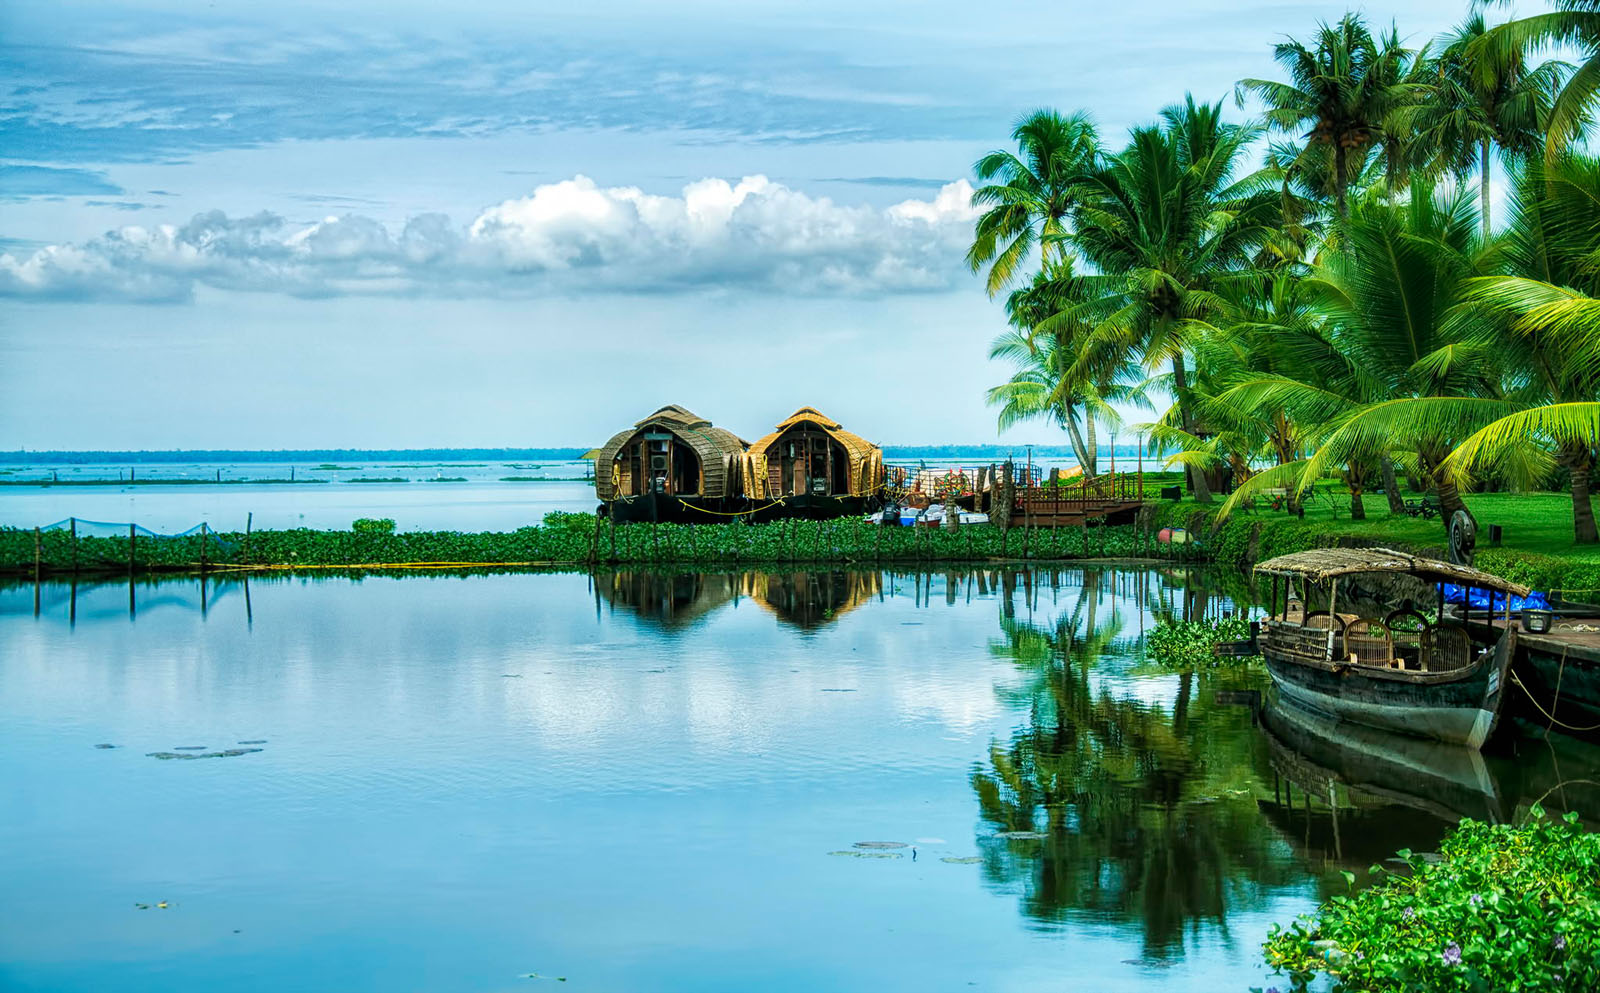 Kumarakom-the land of lakes and backwaters